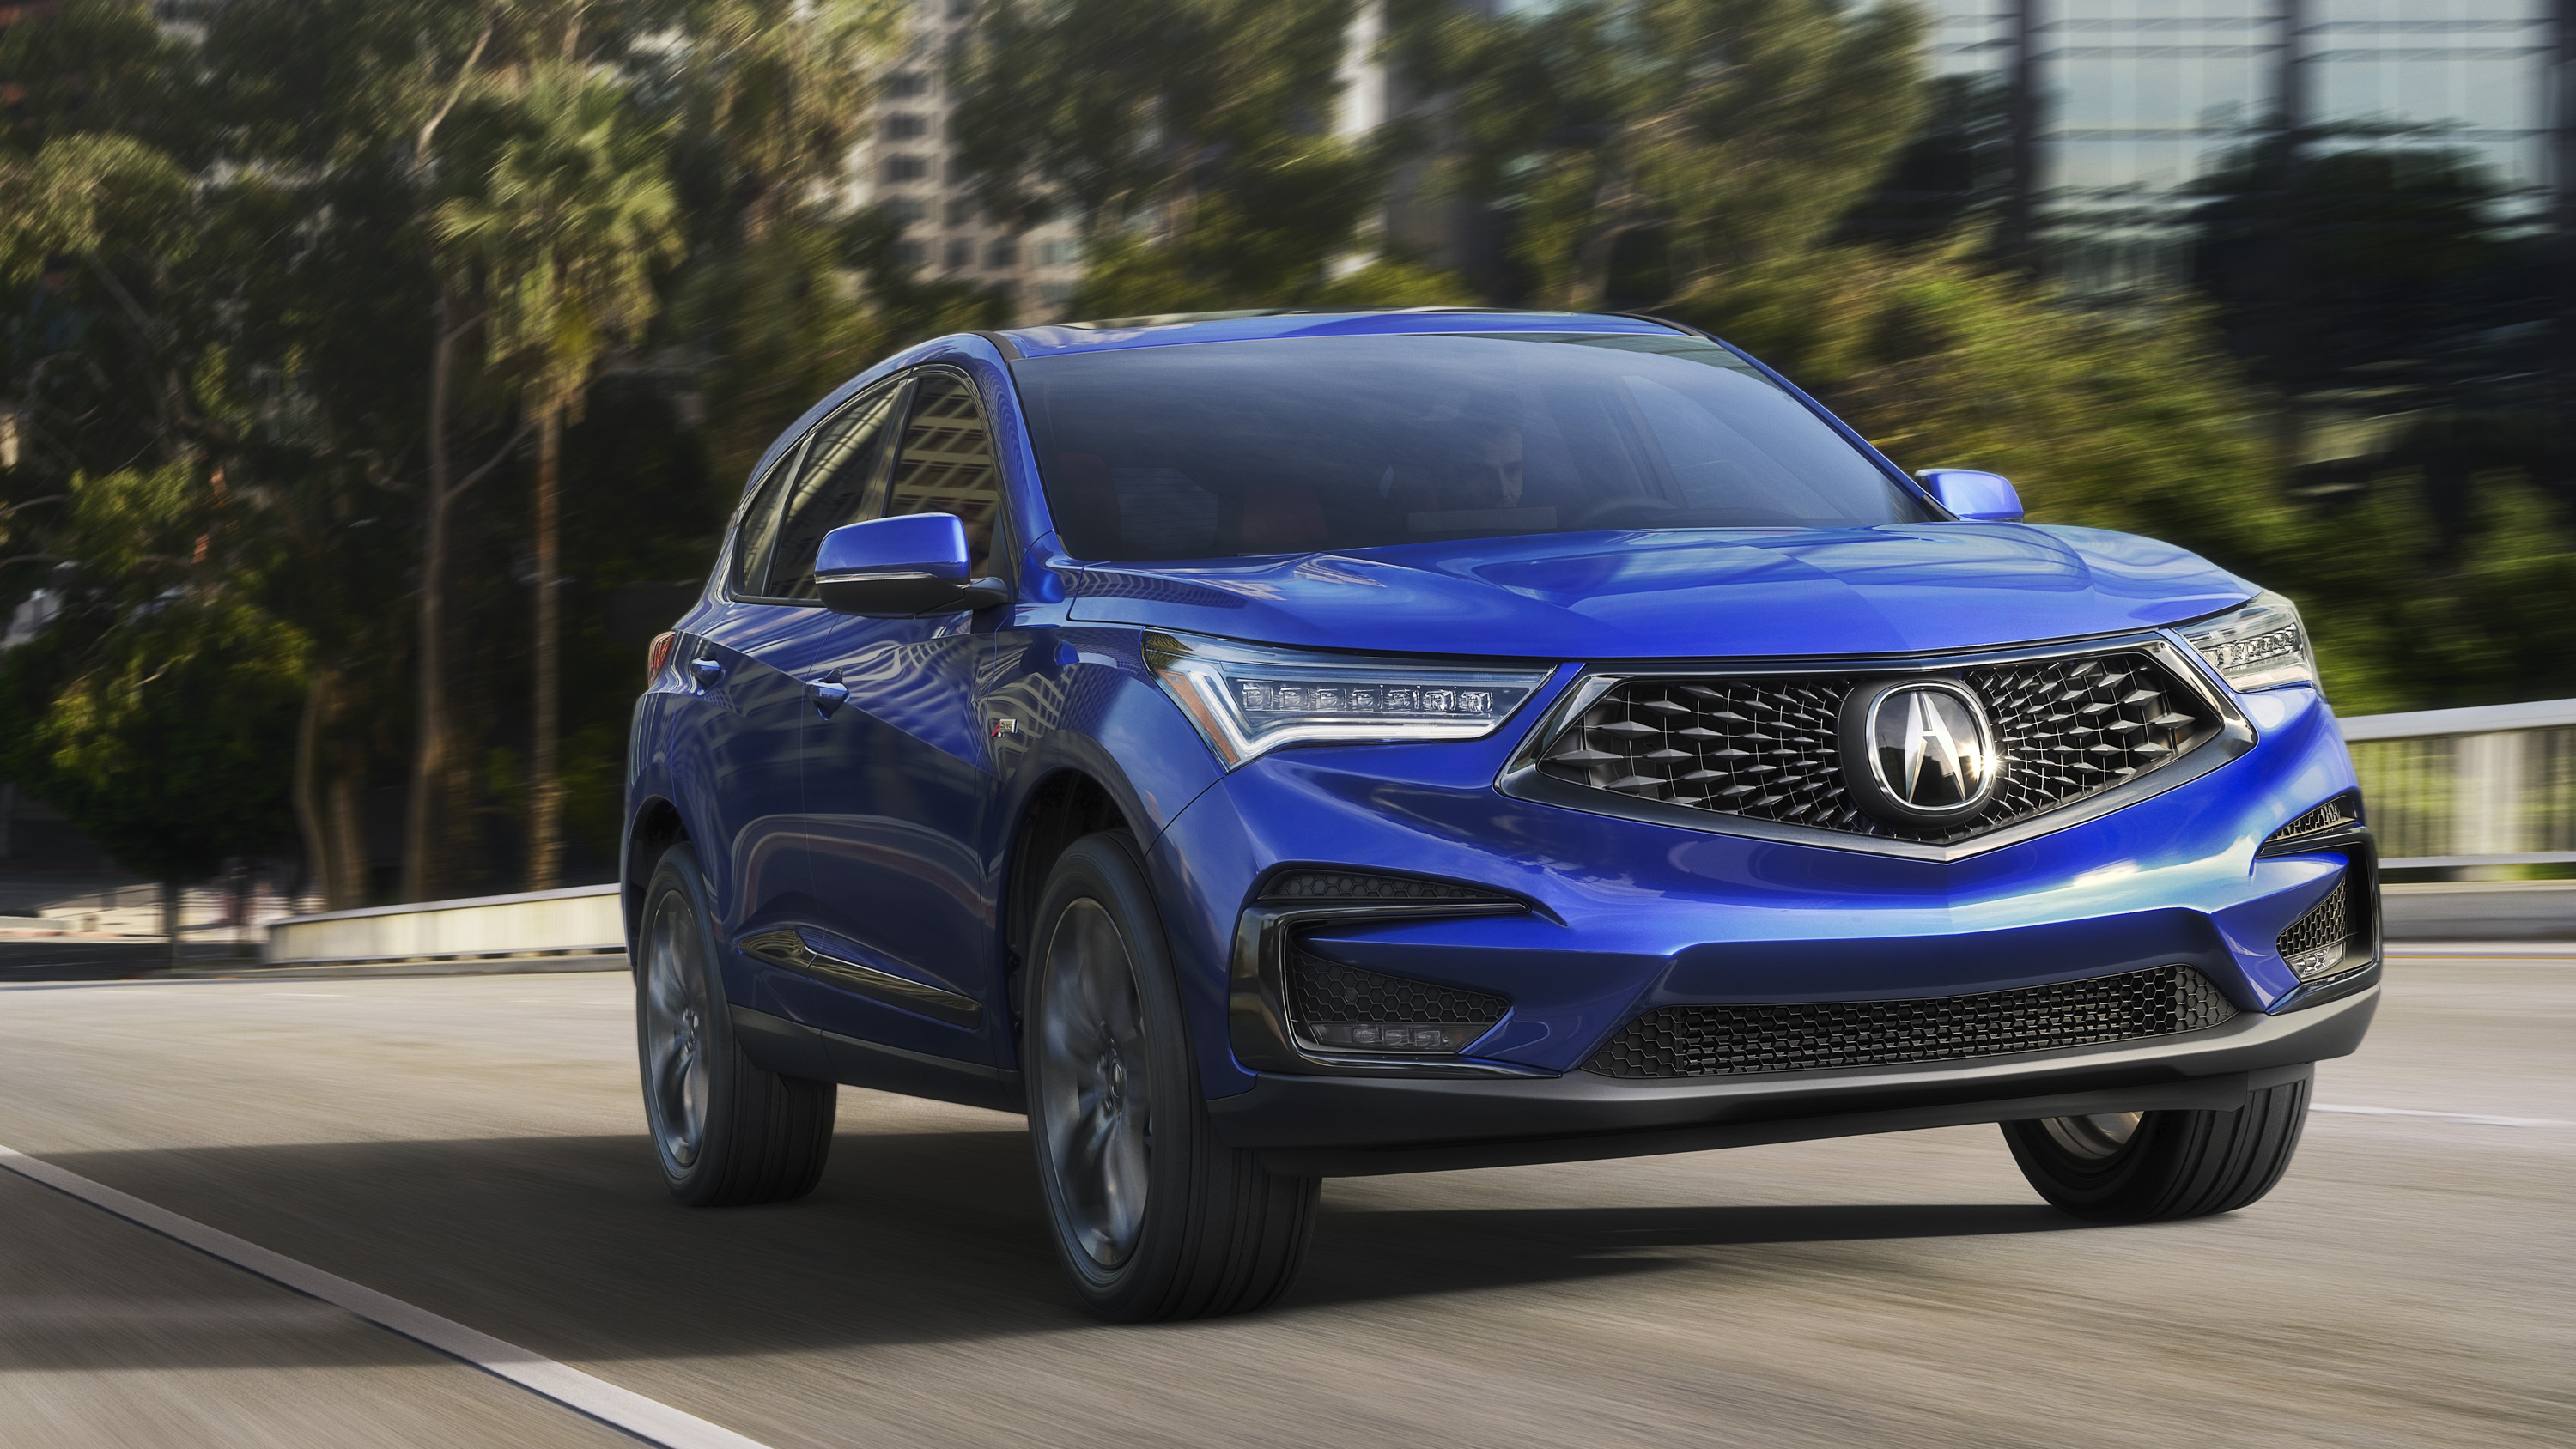 2019 acura rdx top speed. Black Bedroom Furniture Sets. Home Design Ideas